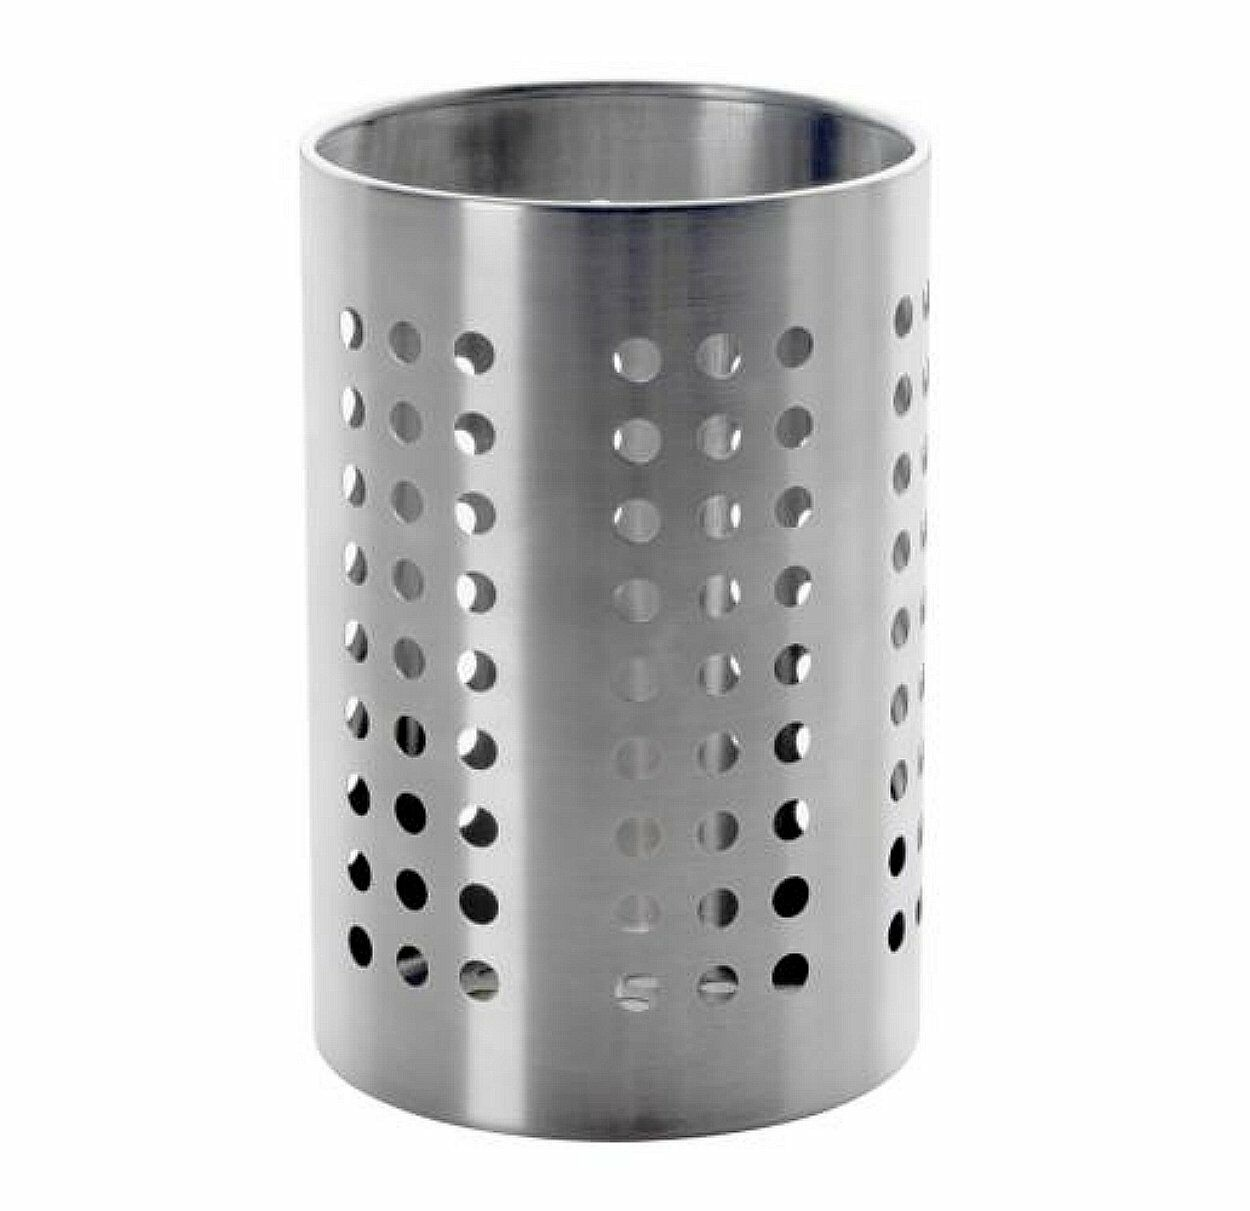 Large Kitchen Utensil Caddy IKEA ORDNING Stainless Steel Cooking Tools Holder